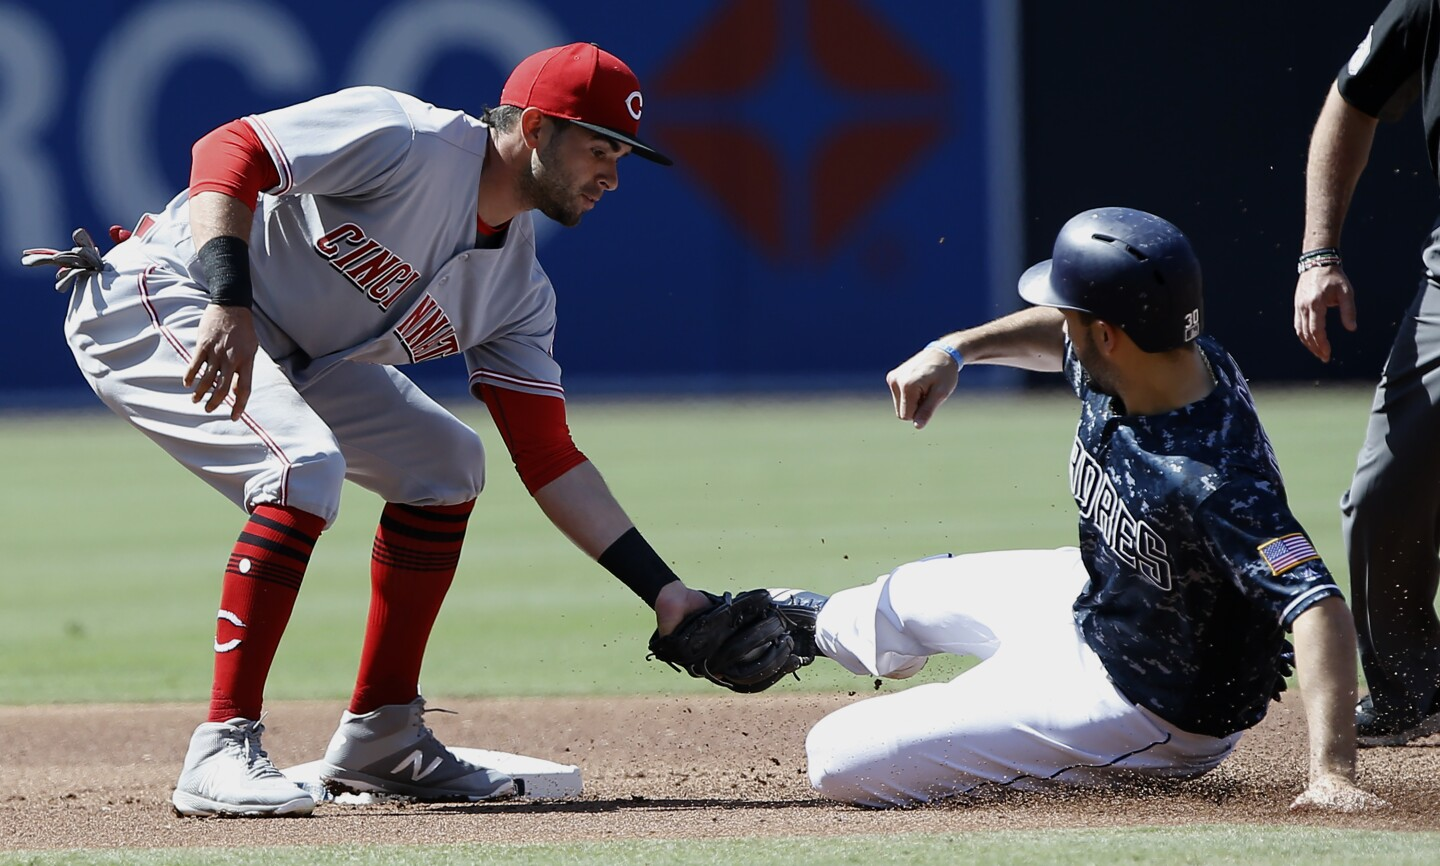 Cincinnati Reds shortstop Jose Peraza, left, tags out San Diego Padres' Eric Hosmer on a steal-attempt during the first inning of a baseball game in San Diego, Sunday, June 3, 2018. (AP Photo/Alex Gallardo)